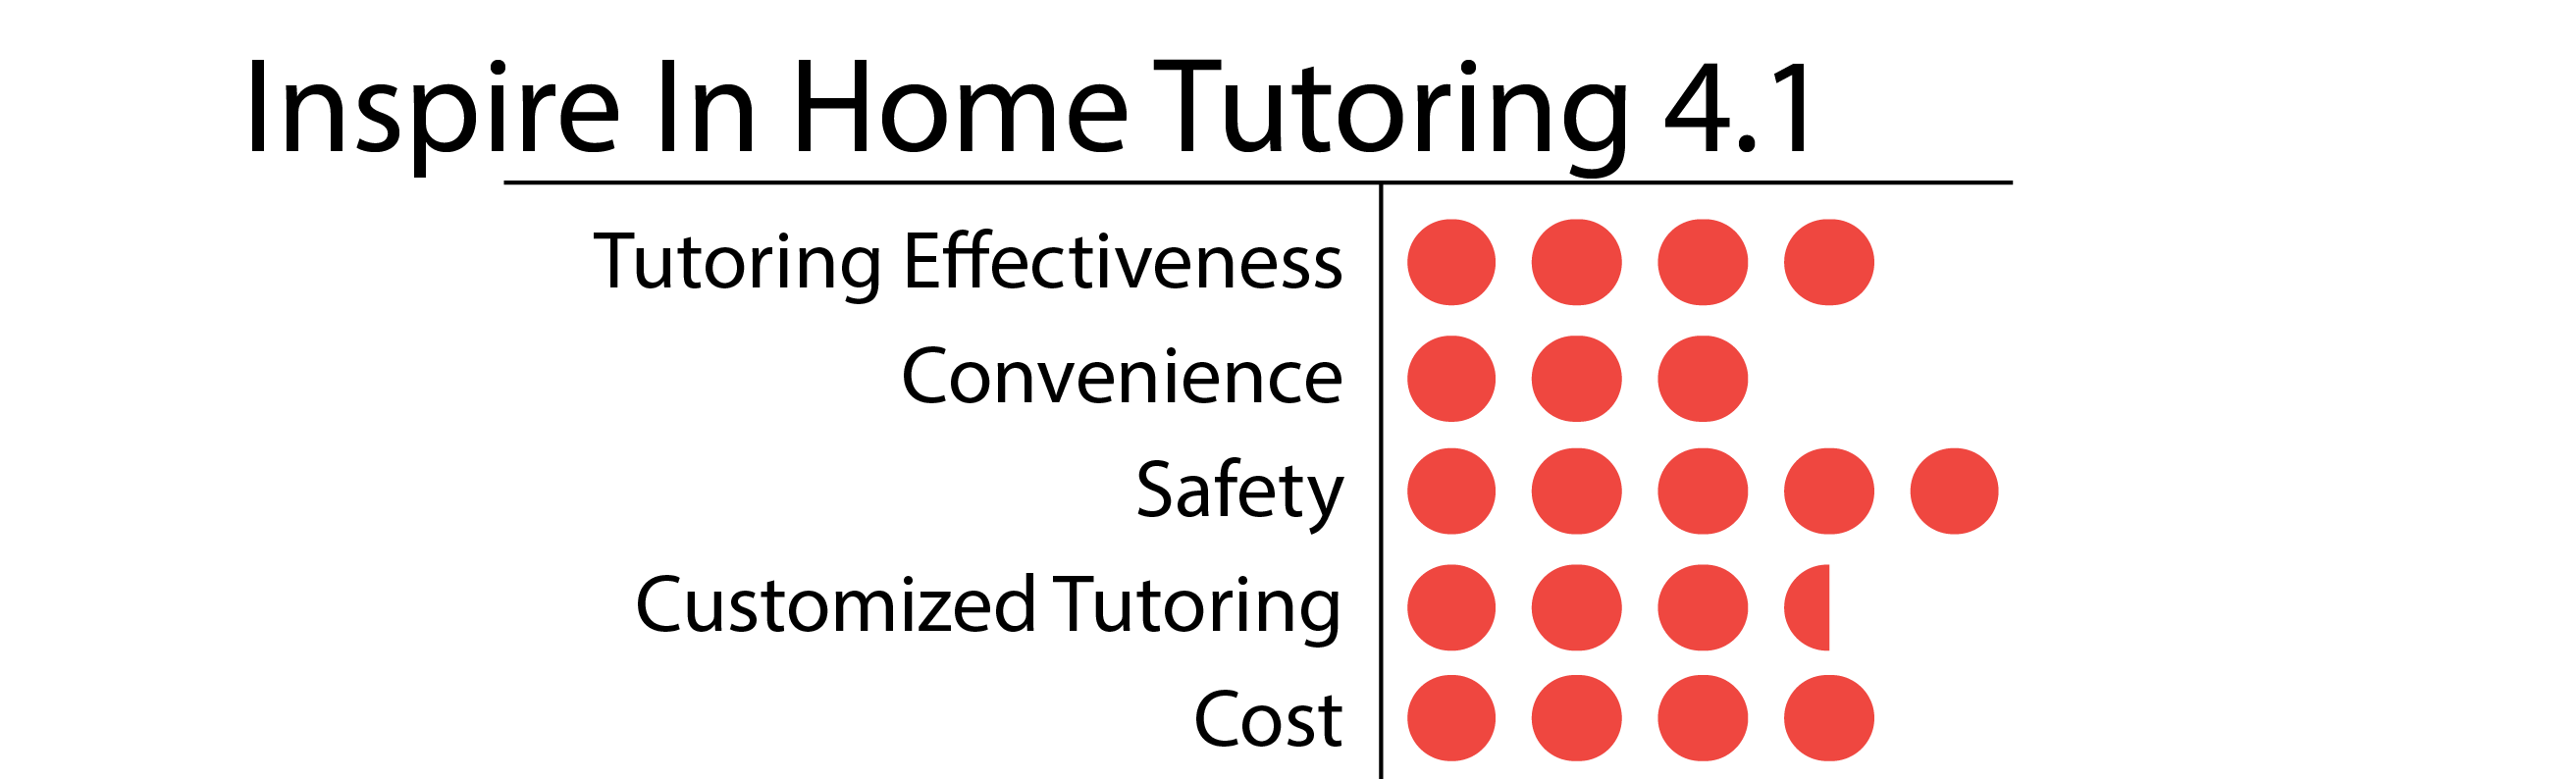 Inspire In Home Tutoring-01